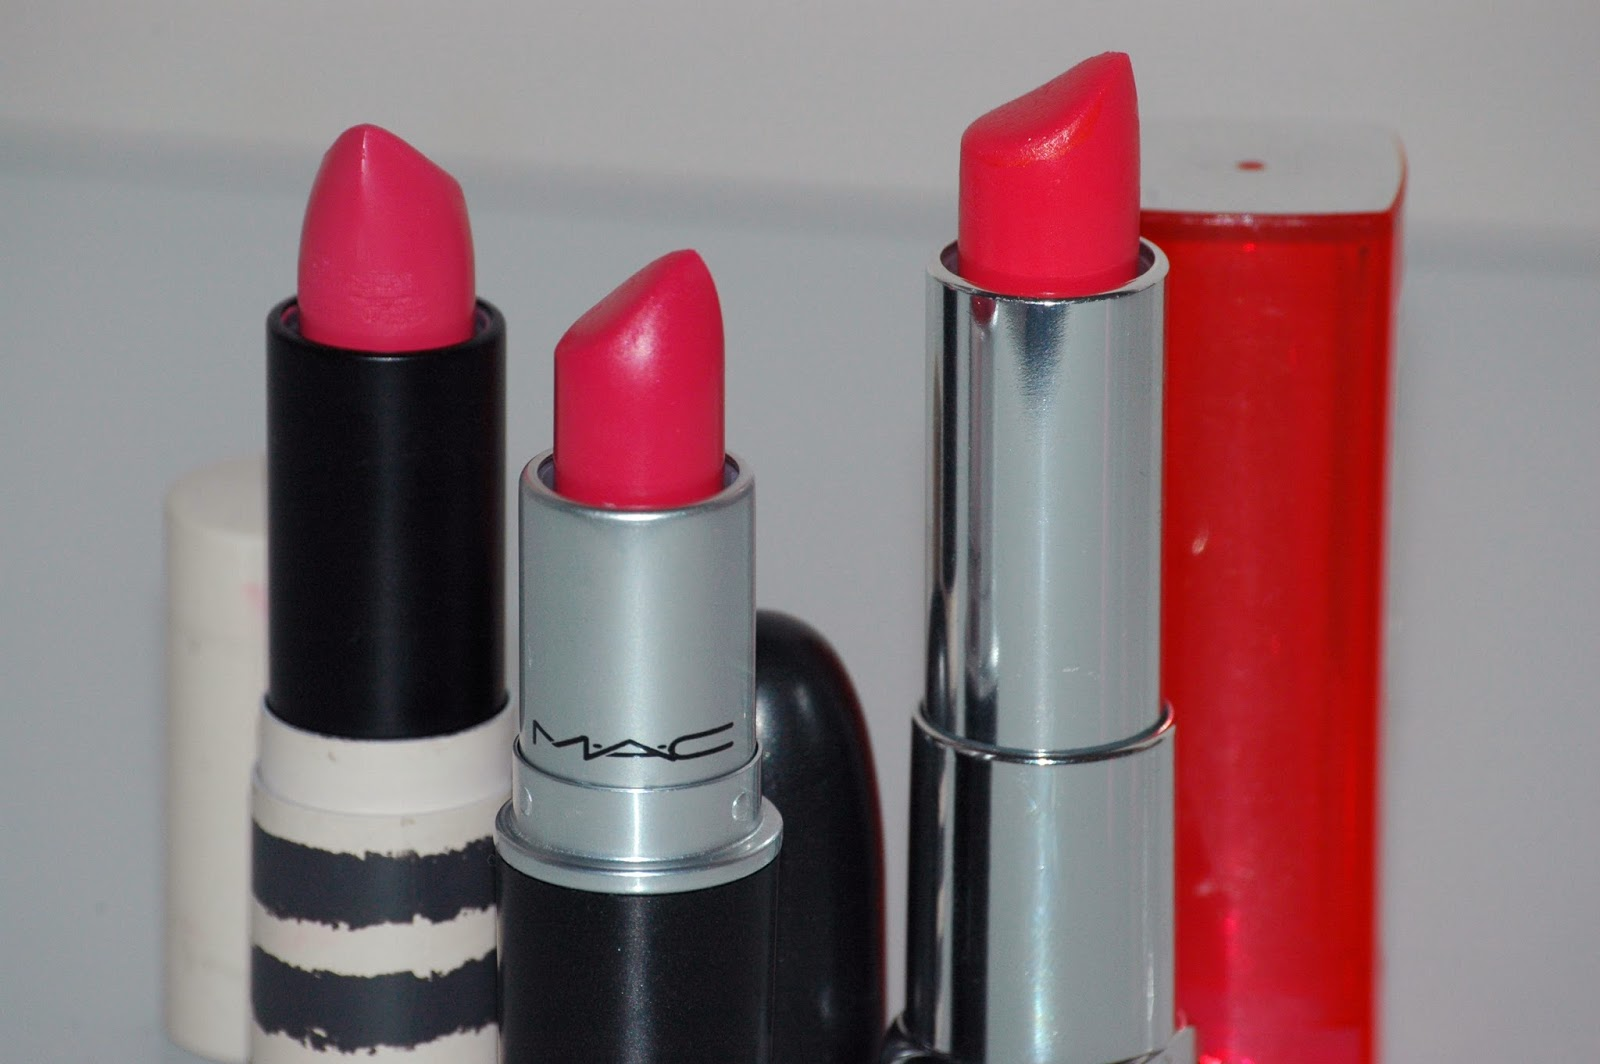 Mac Lipstick Dupes Impassioned